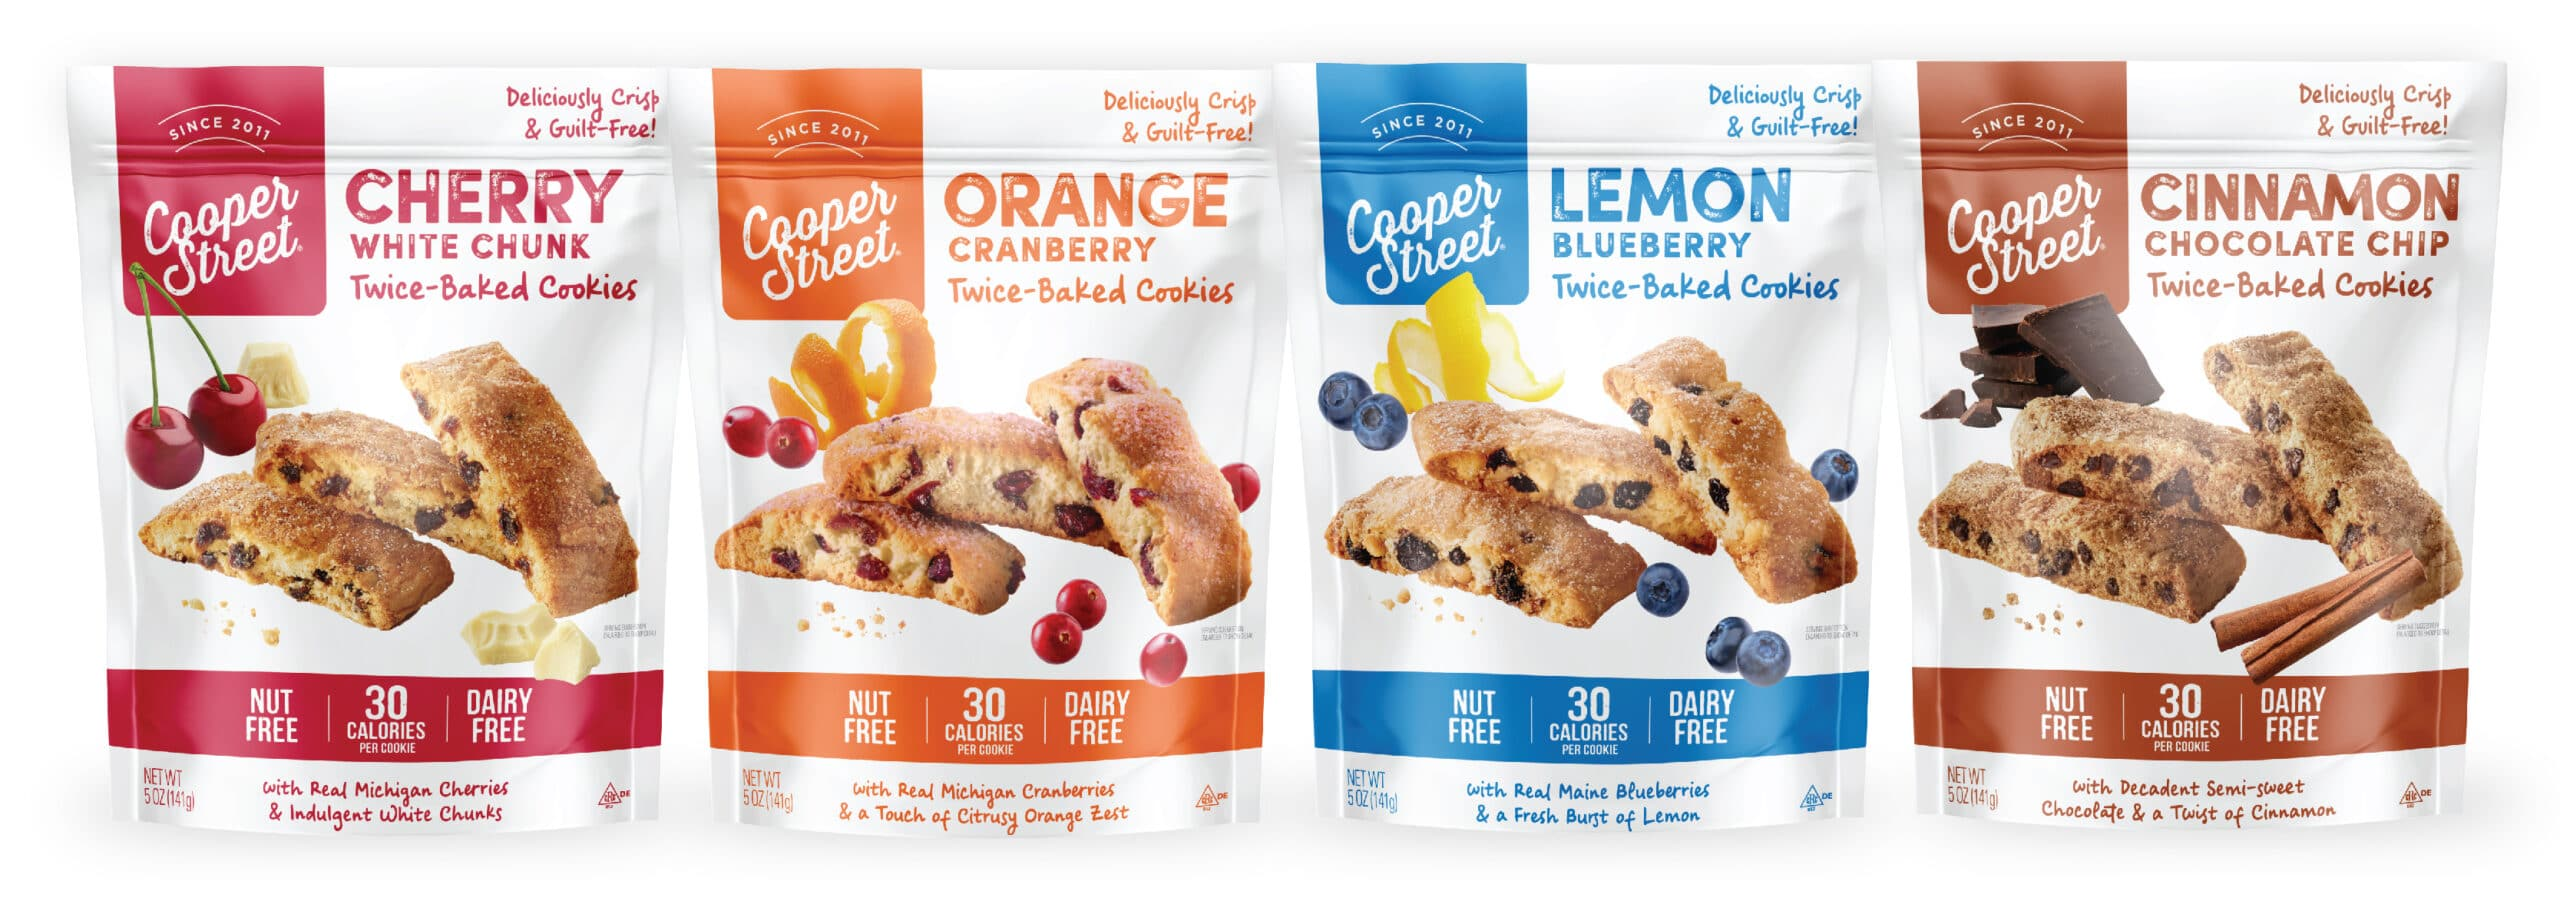 Cookies Pouch Packaging Design